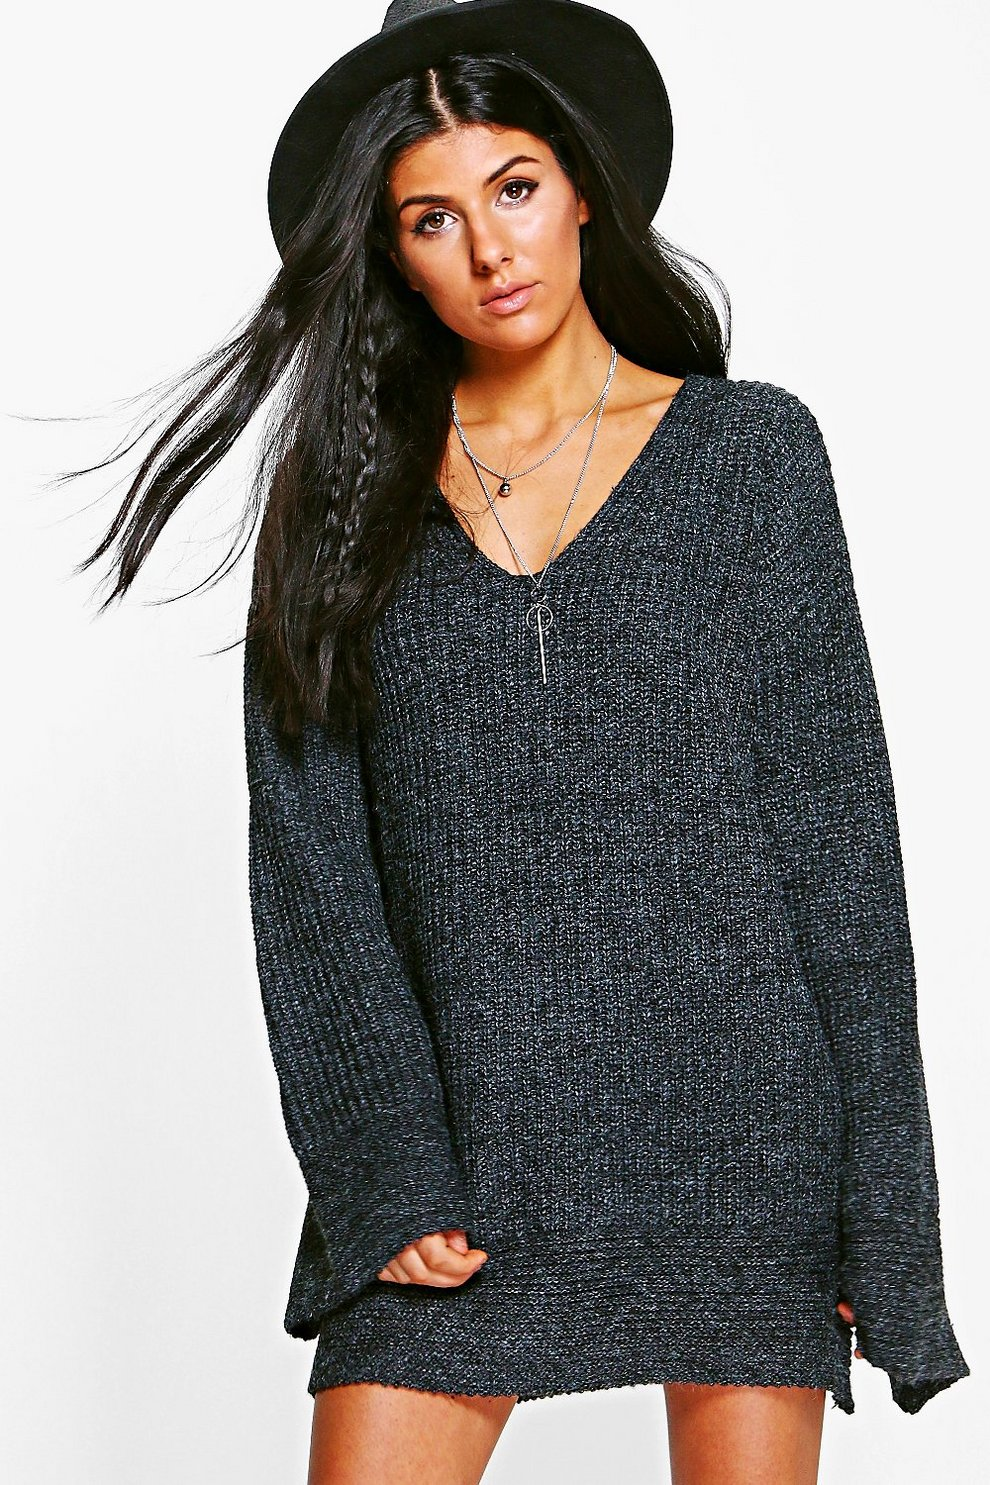 Boohoo Wide Sleeve Knitted Dress Sale Low Price Fee Shipping In China Clearance Outlet 7LNlC